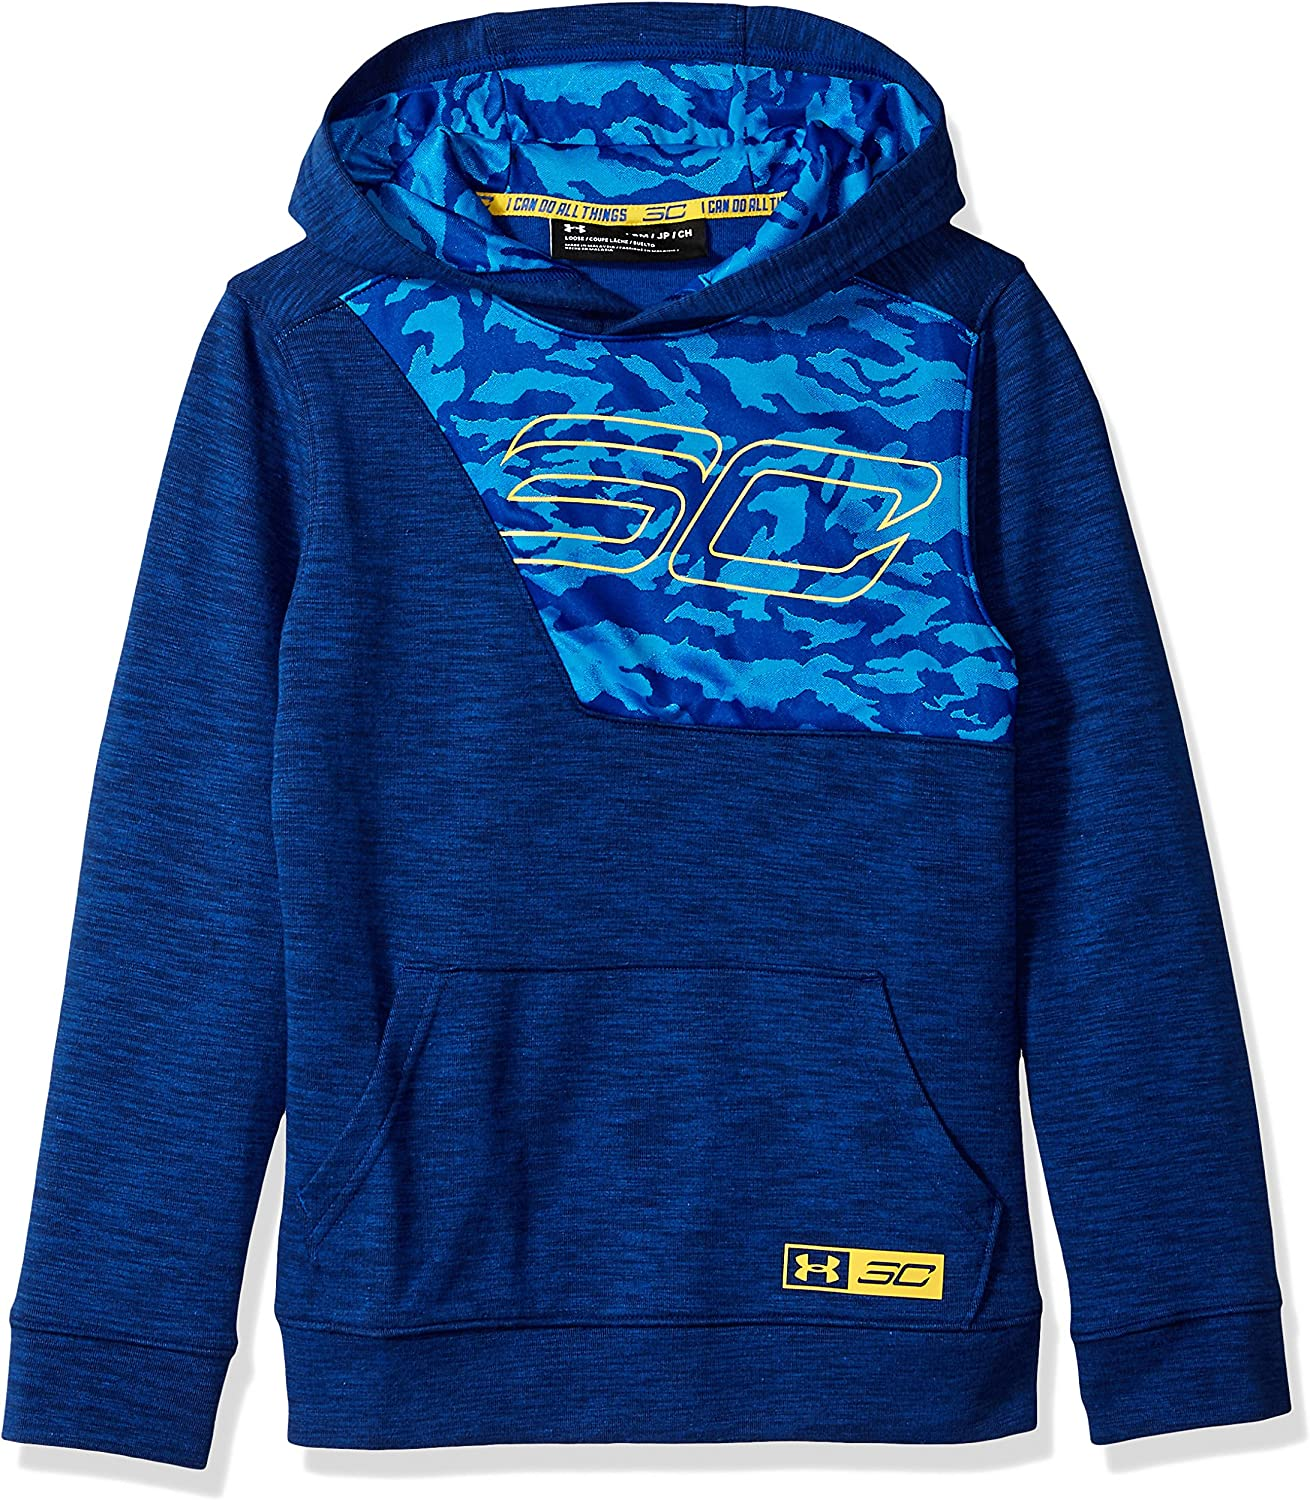 Under Armour Boys' Sc30 Double Knit Hoodie